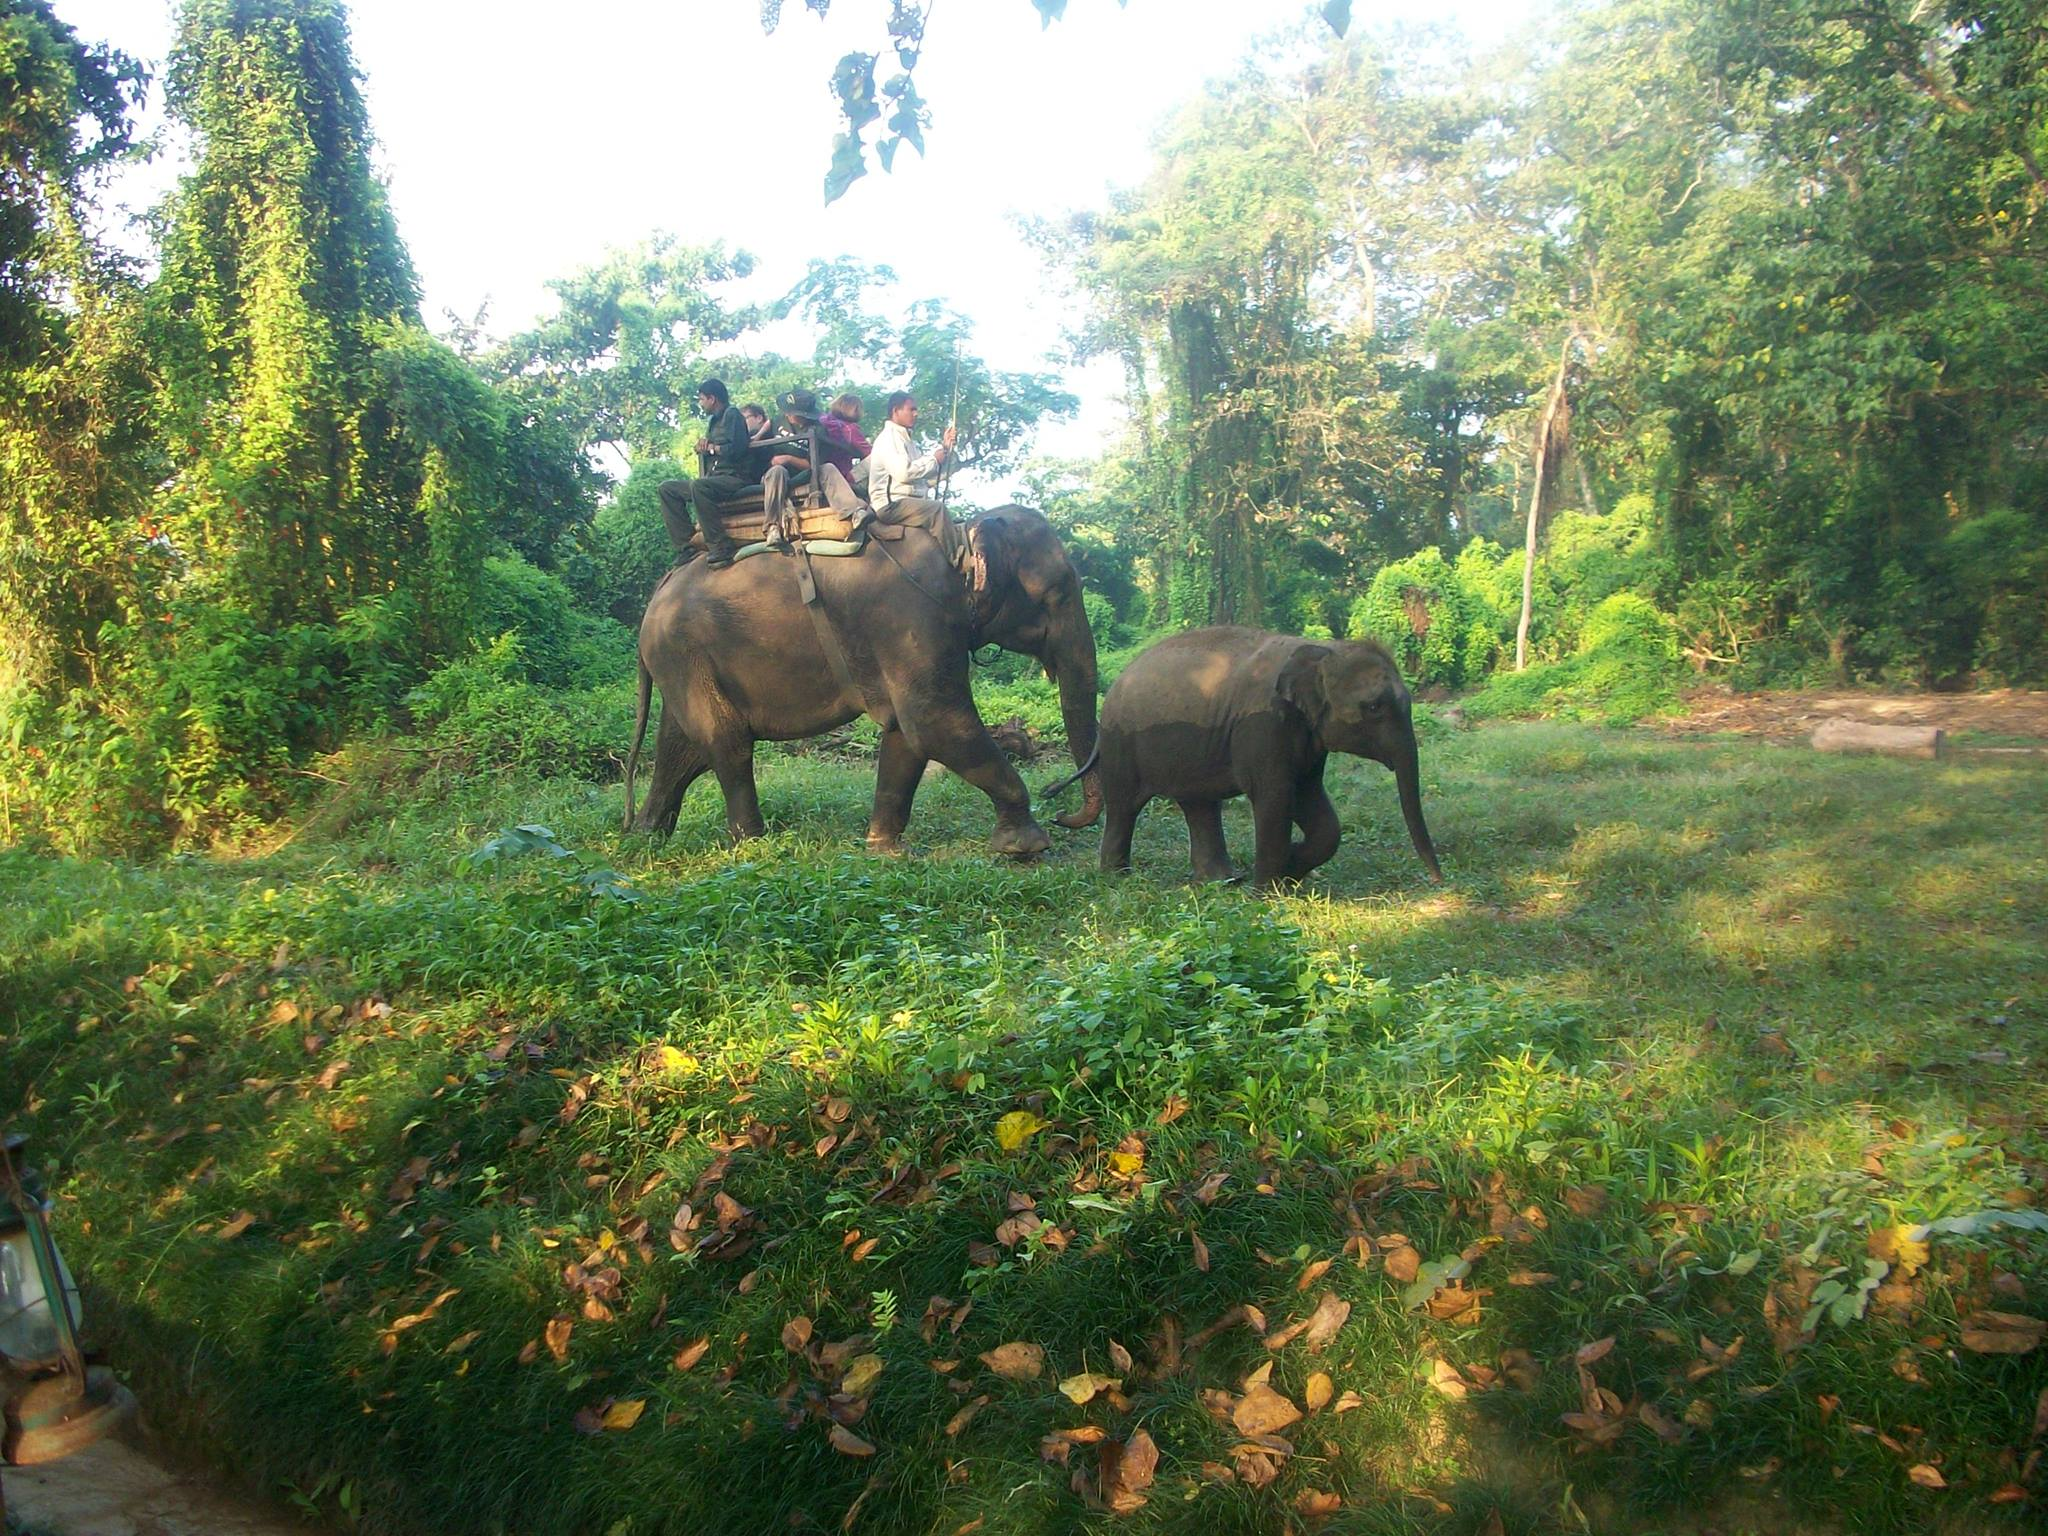 File:Asian Elephant Safari in Chitwan National Park, Chitwan, Nepal